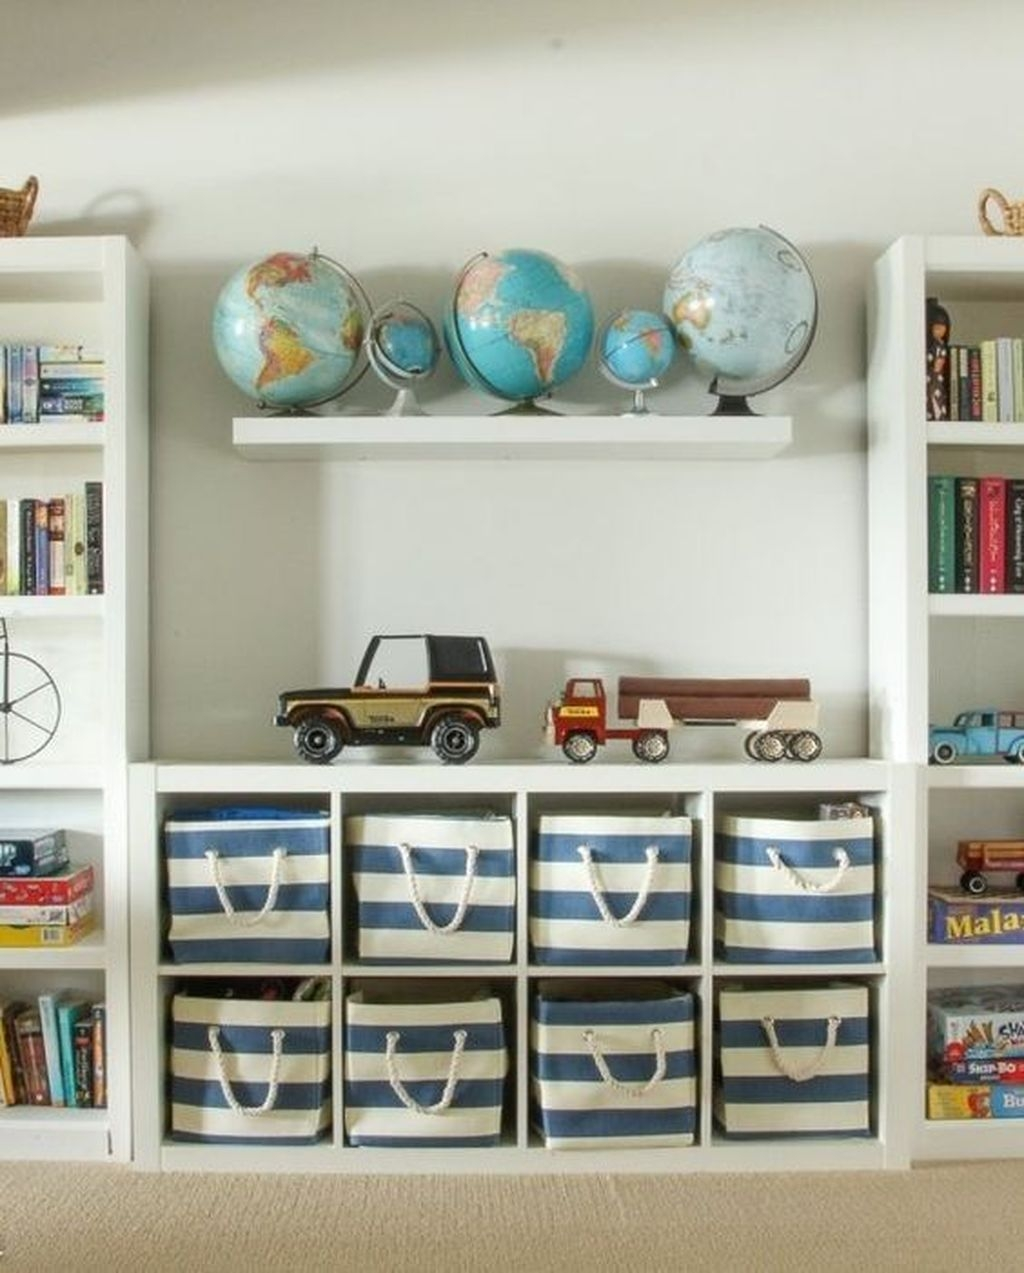 Luxury Toys Storage Organization Ideas09